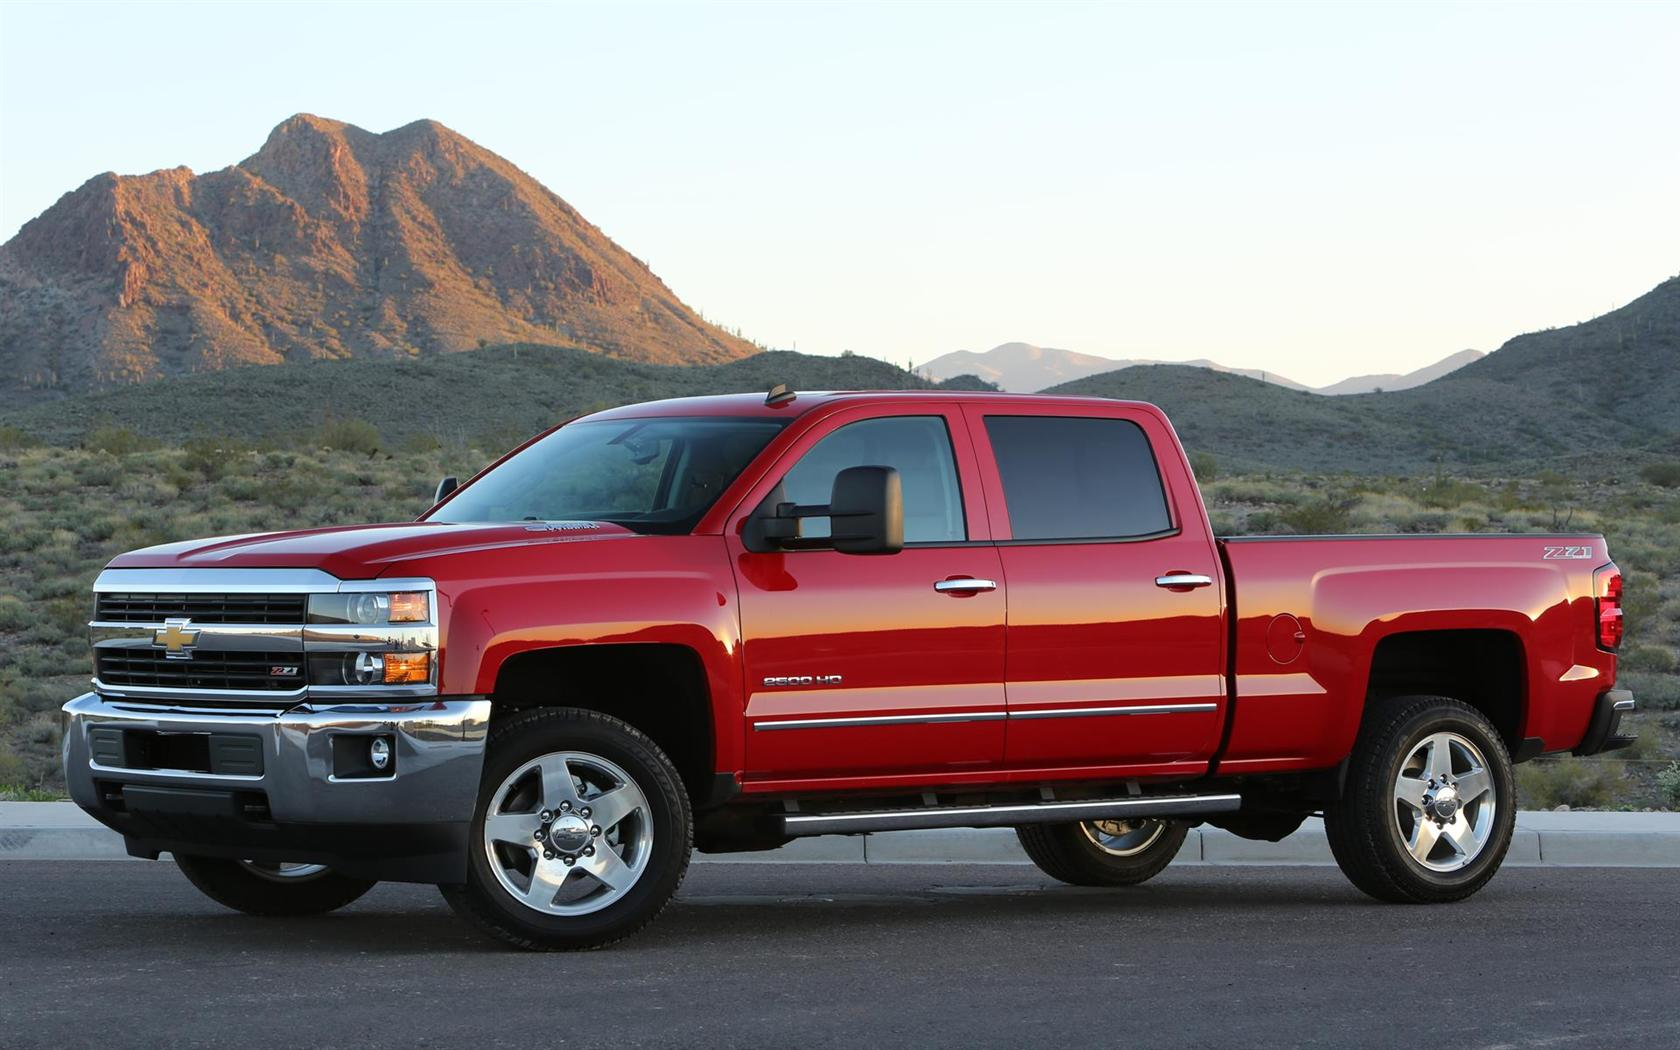 Supar Car Hd Wallpaper 2015 Chevrolet Silverado Hd Image Photo 53 Of 61